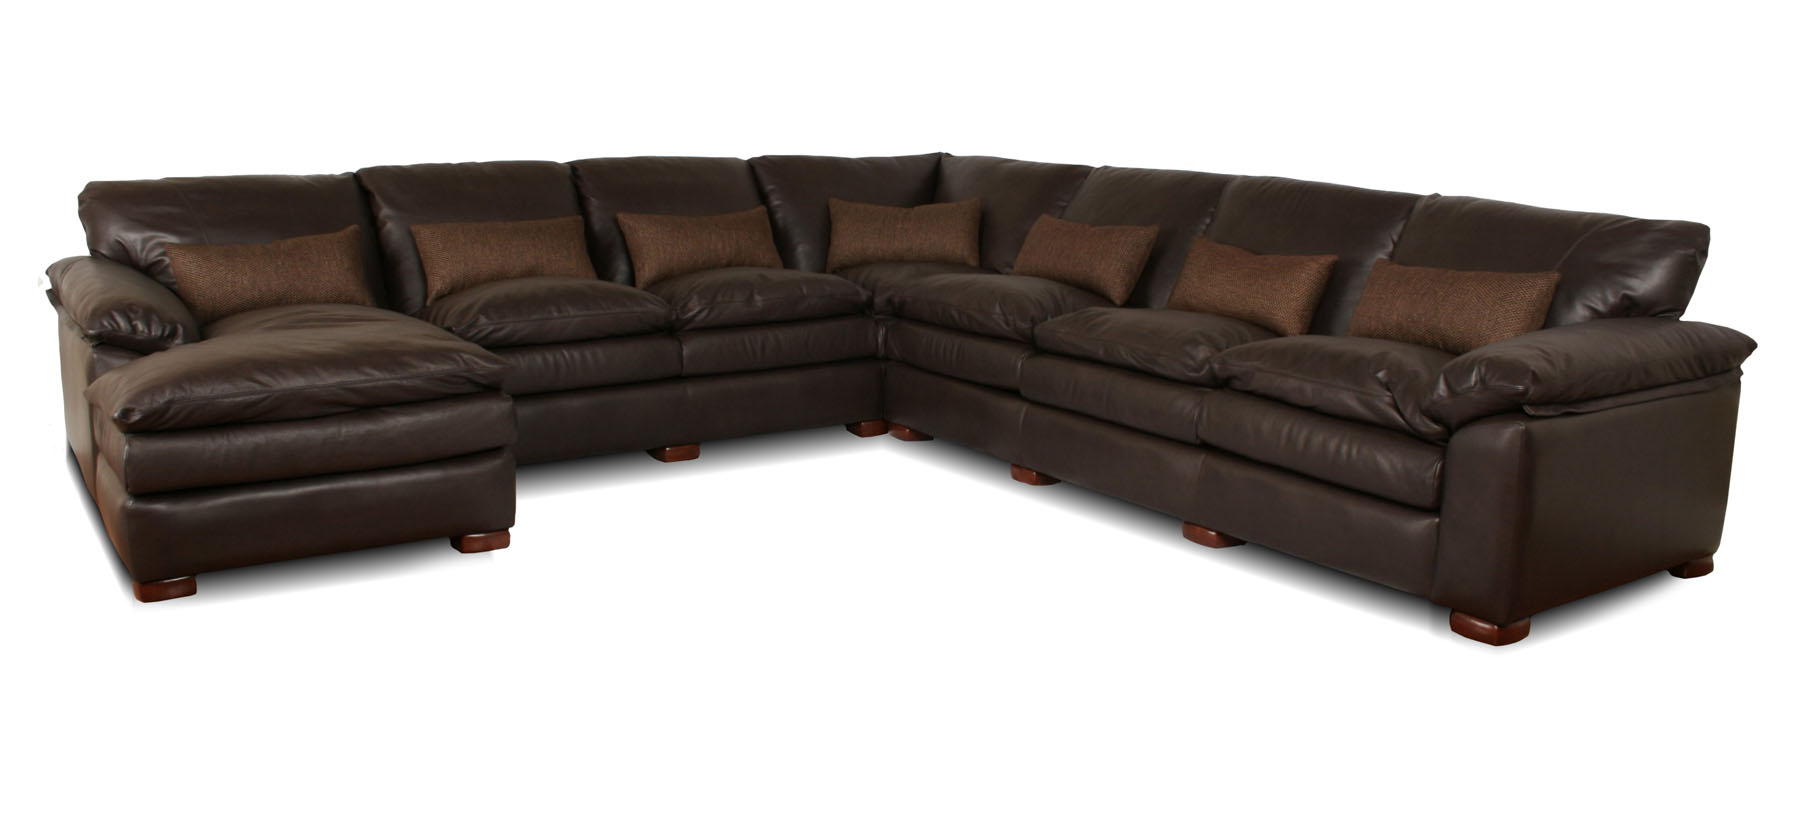 deep leather sectional sofa bed for rv canada geneva